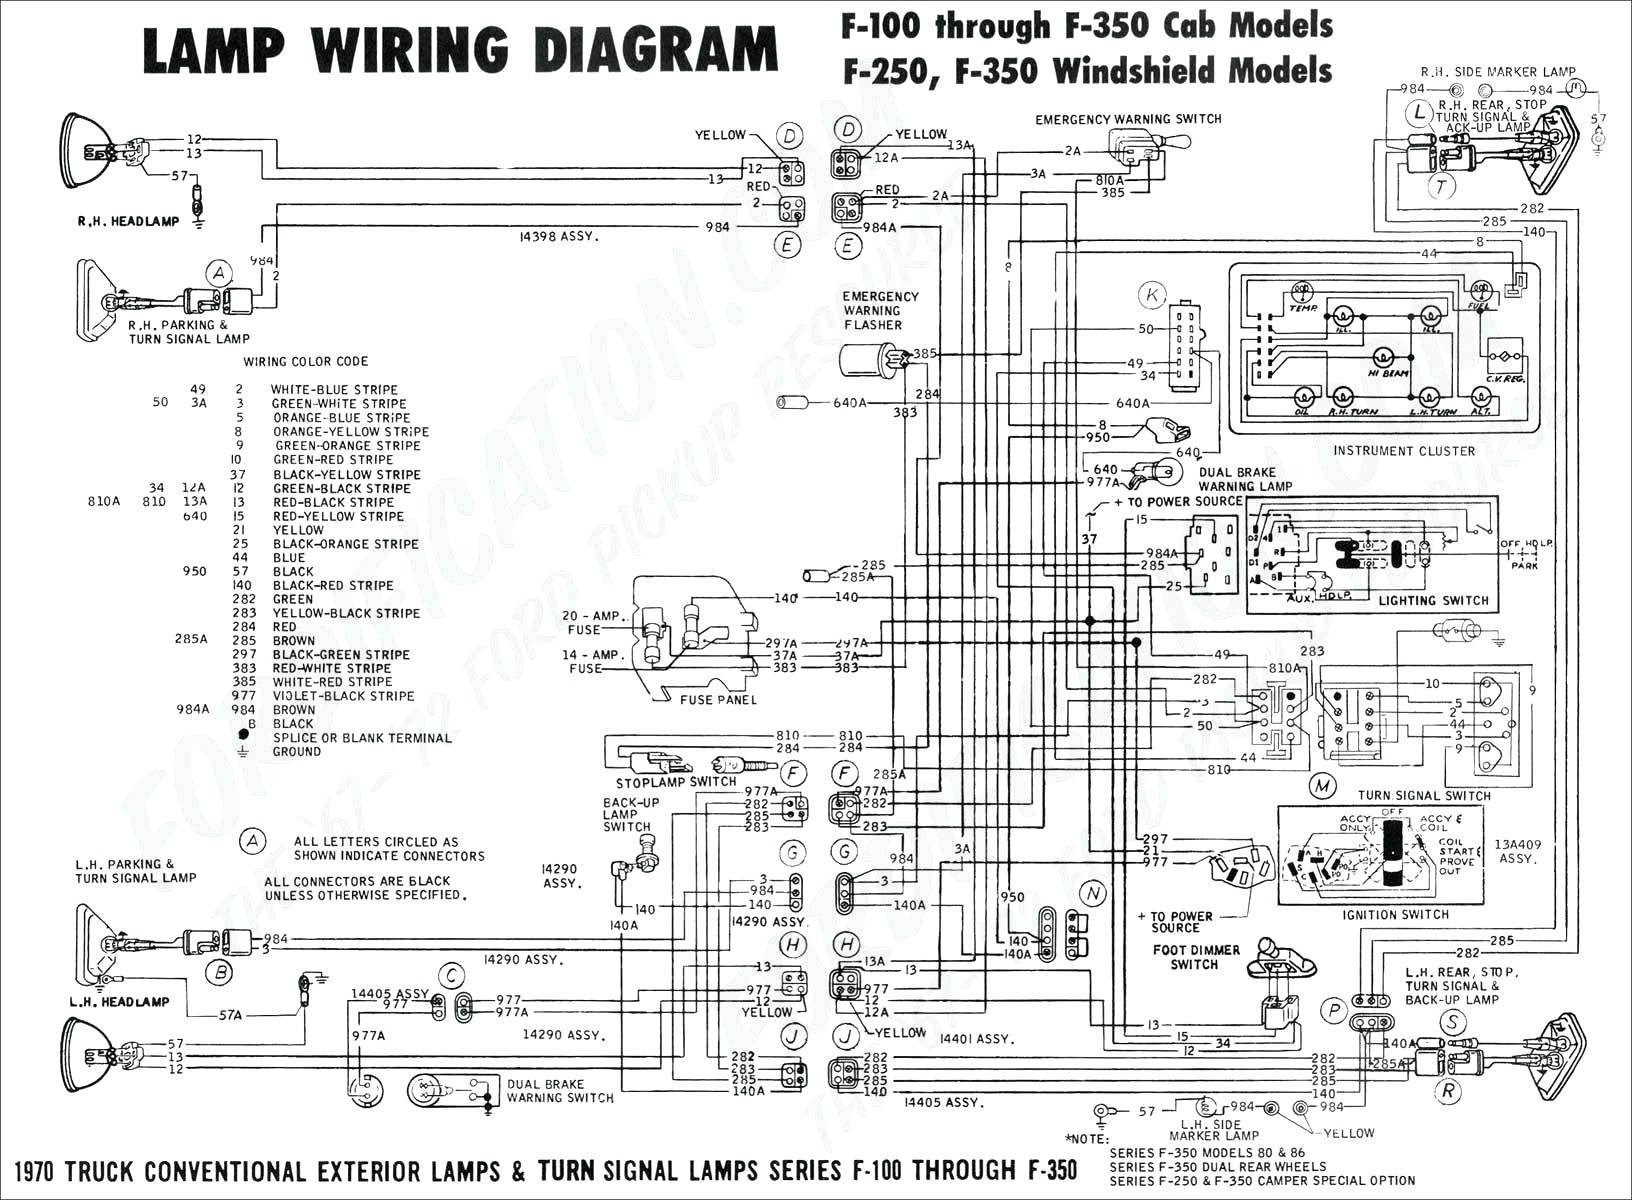 Chevy Silverado Trailer Wiring Diagram 2005 All Stereo Harness Get 2001 Ford F250 Sample Troubleshooting